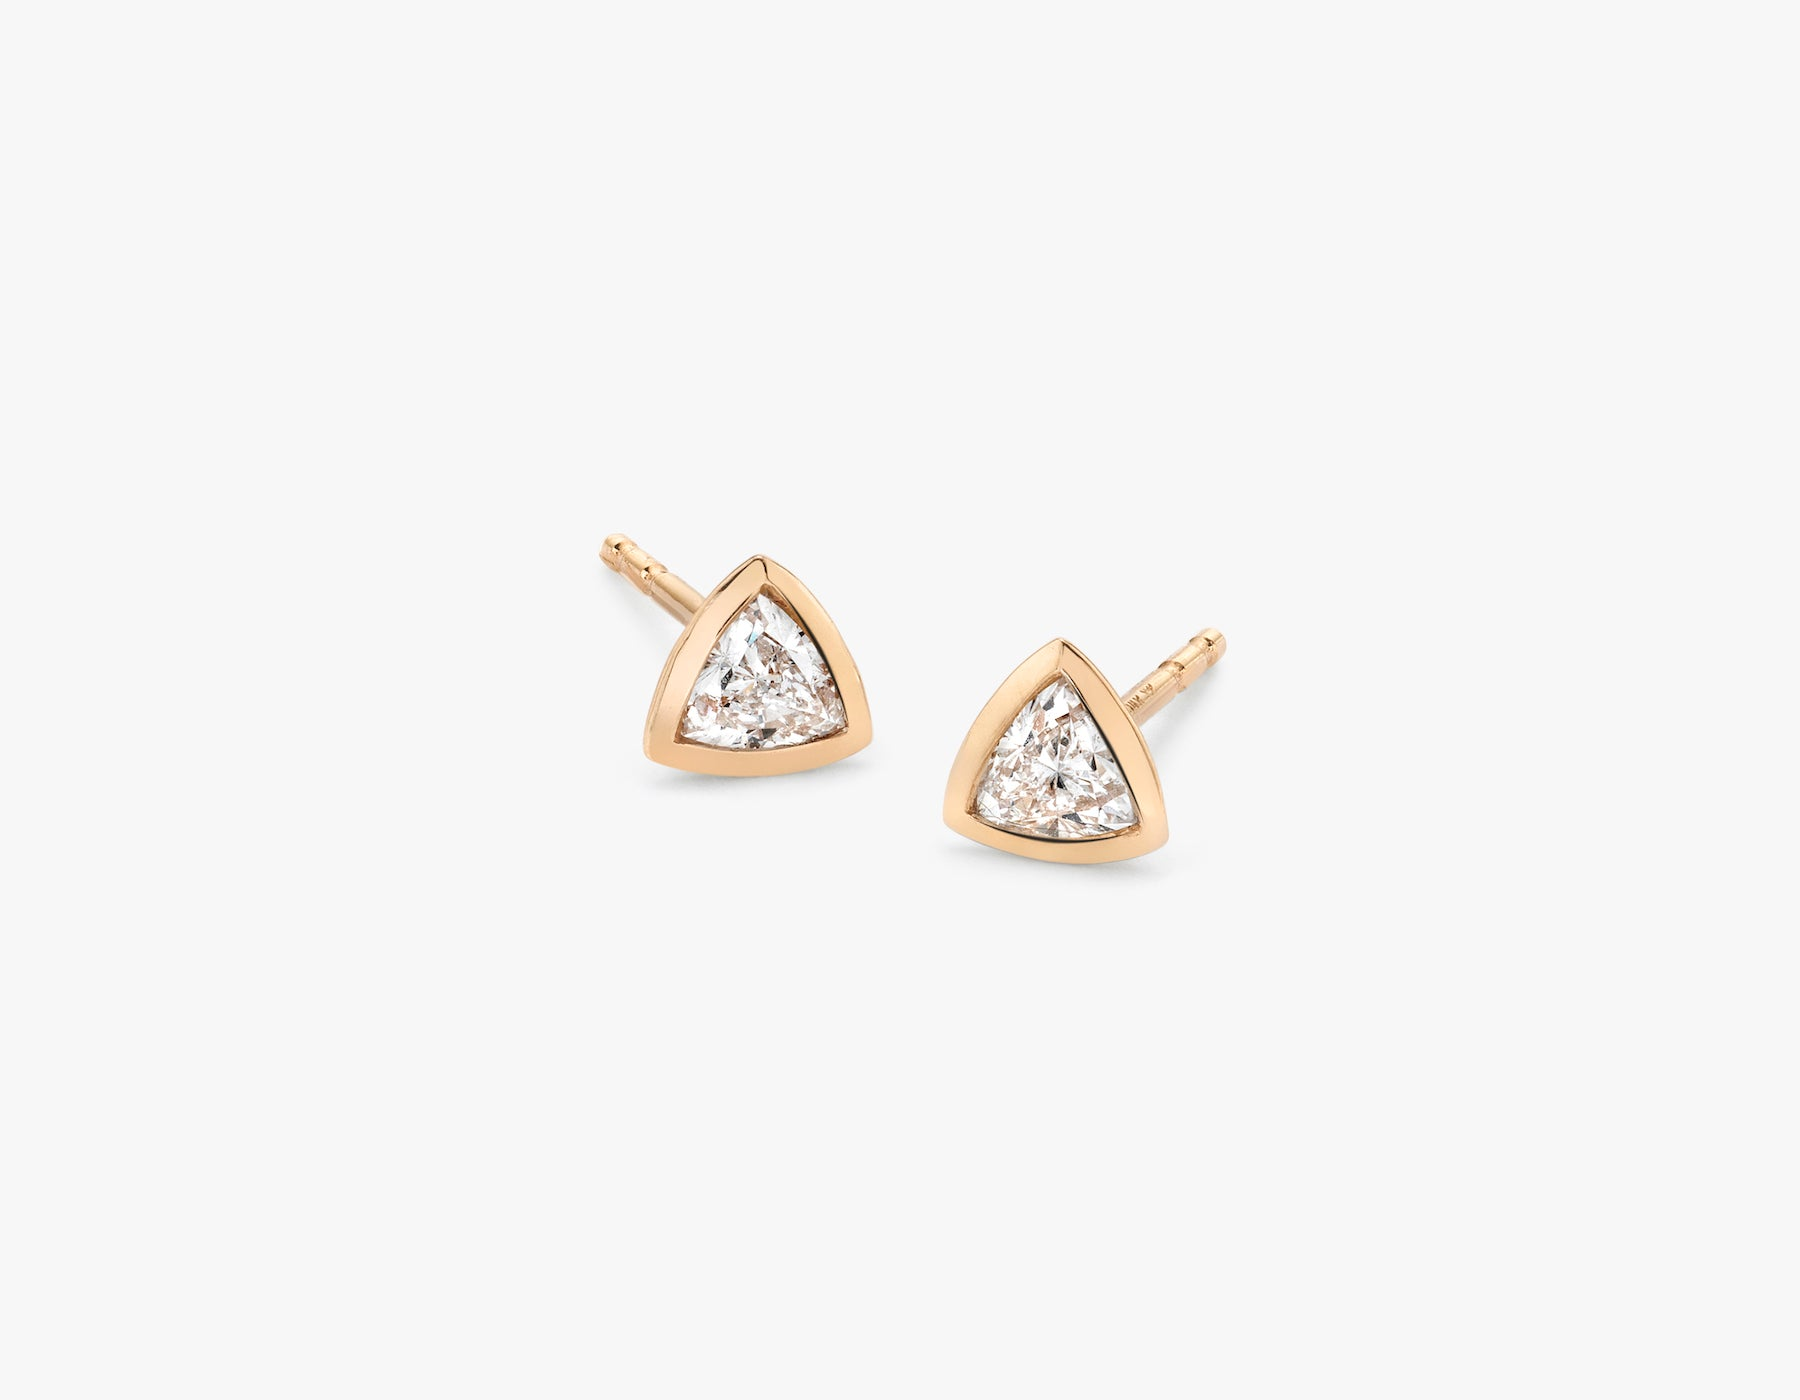 Vrai simple minimalist Trillion Diamond Bezel Earrings, 14K Rose Gold